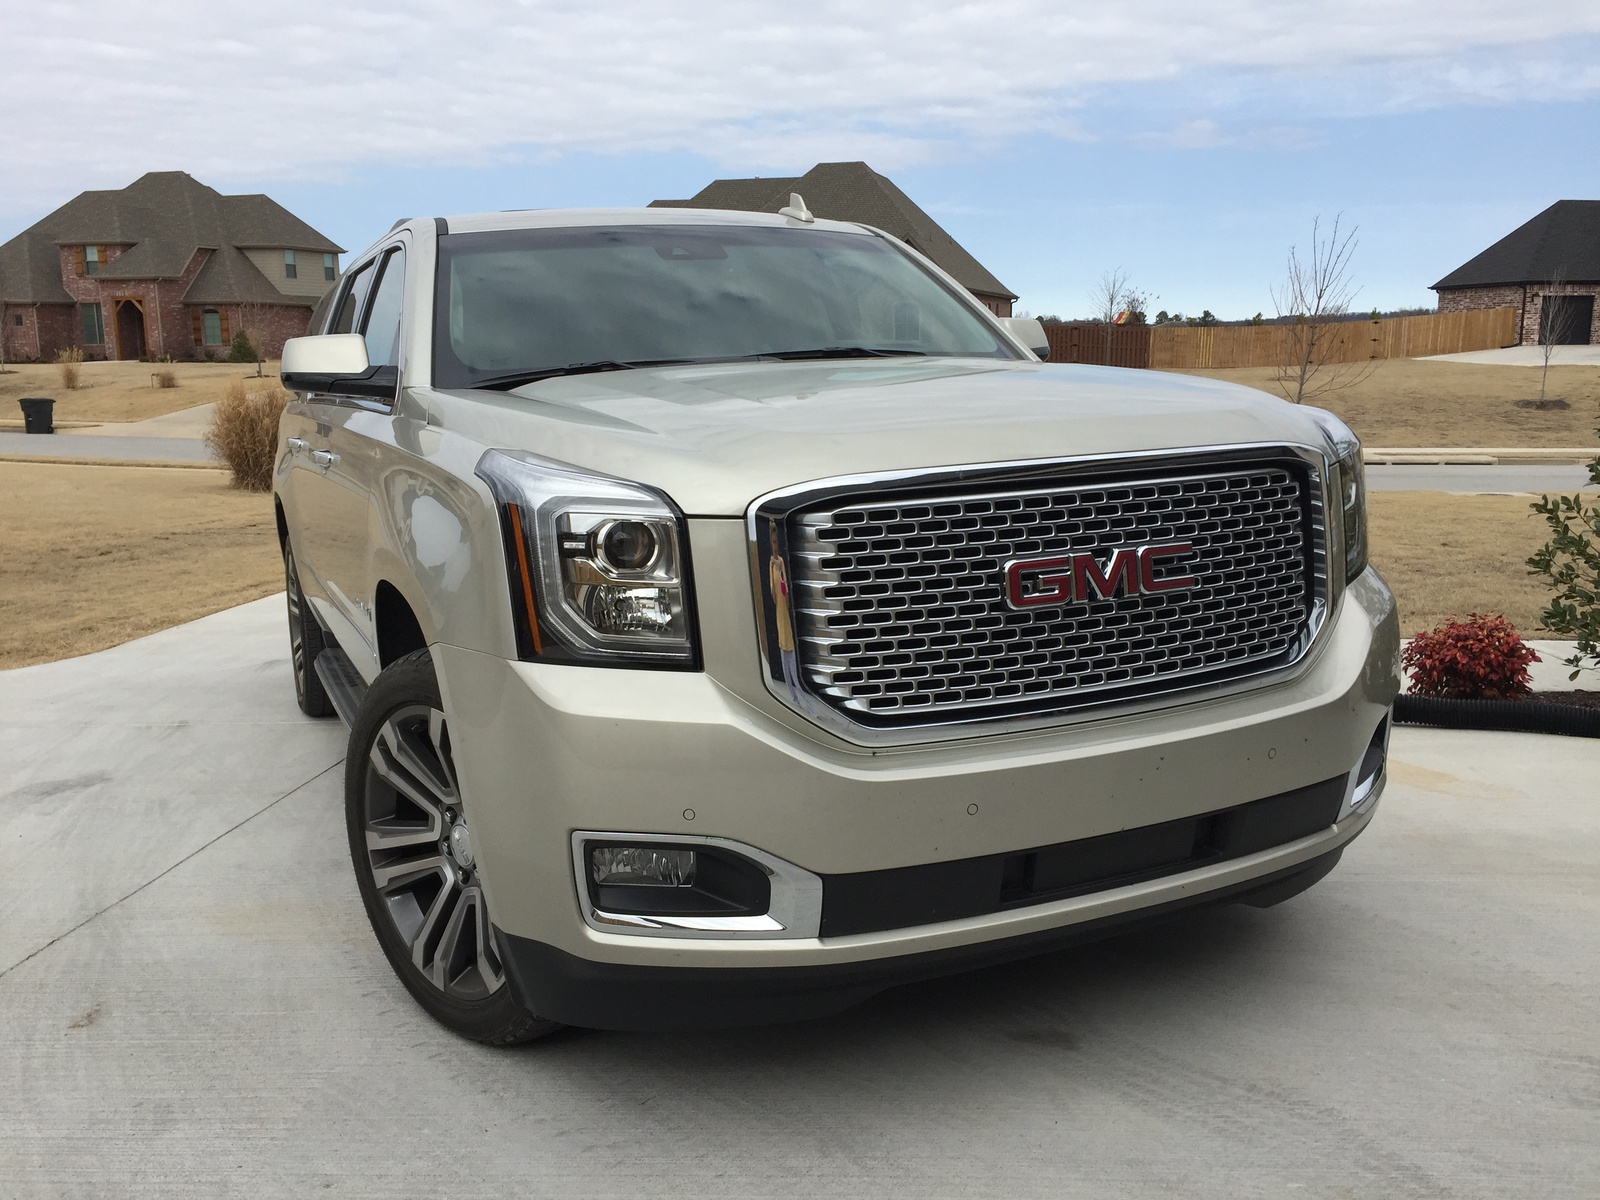 Picture of 2017 GMC Yukon XL Denali 4WD